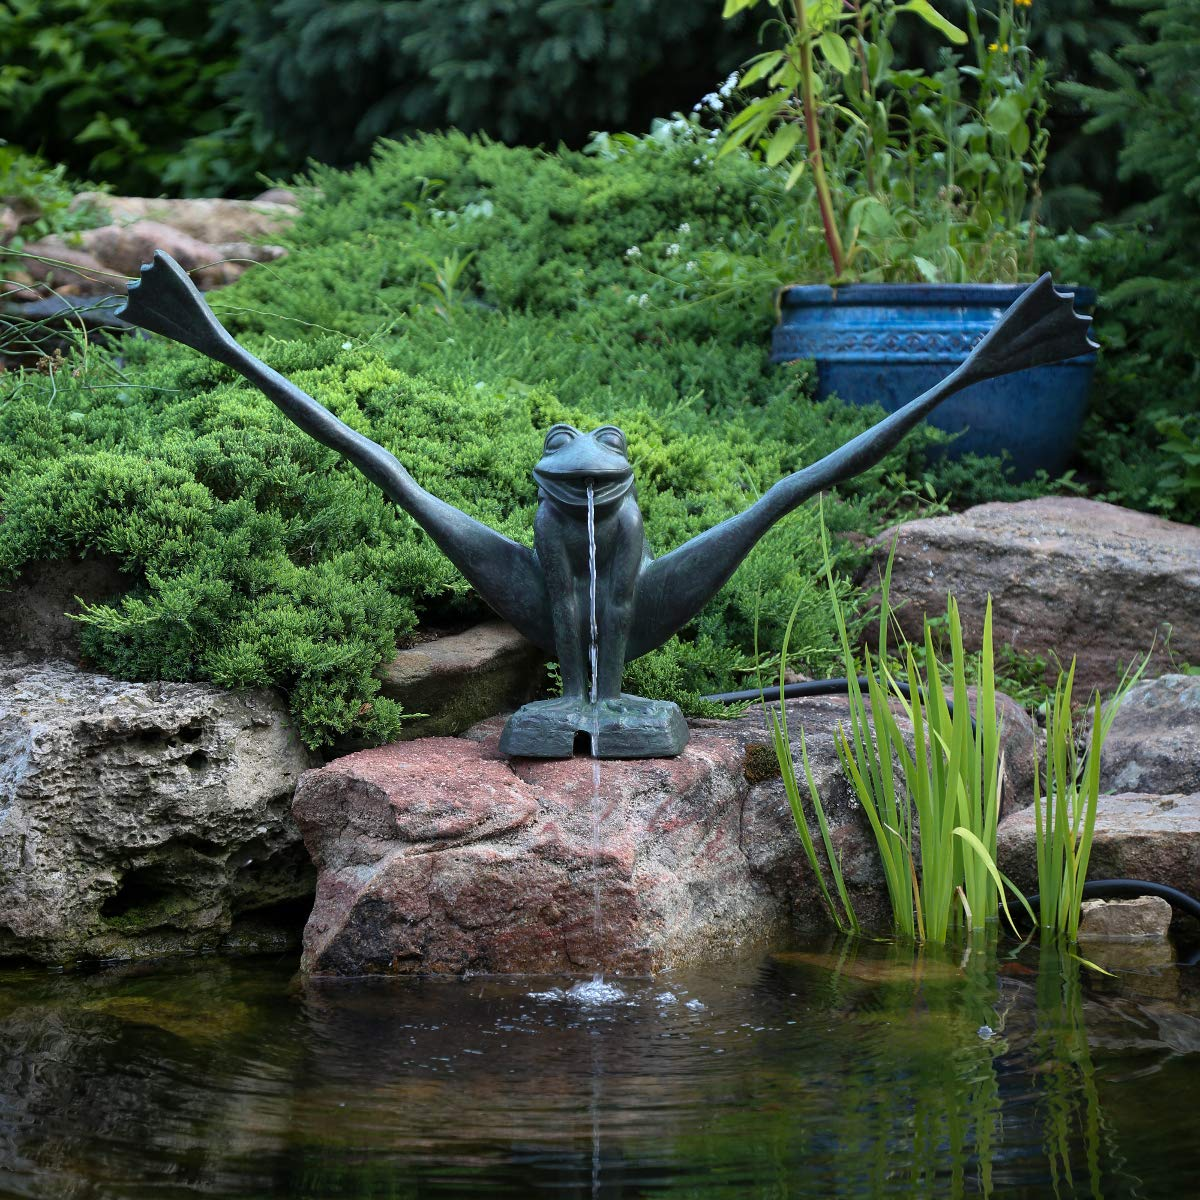 Aquascape Crazy Legs Frog Spitter Fountain for Ponds and Water Gardens | 78312